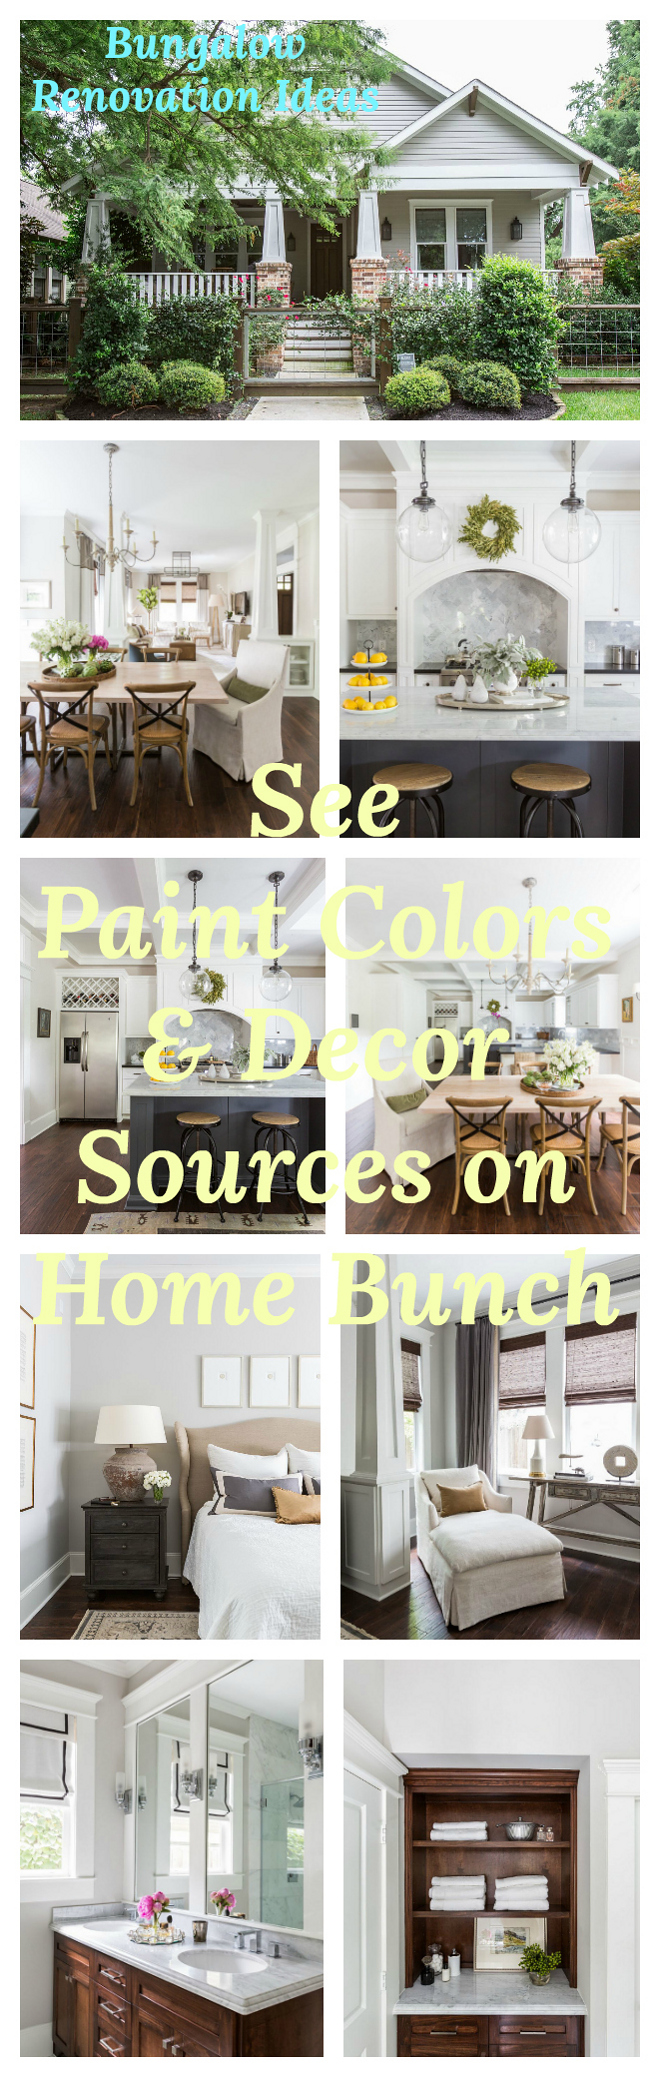 Bungalow Renovation Ideas. See paint colors and decor sources on Home Bunch